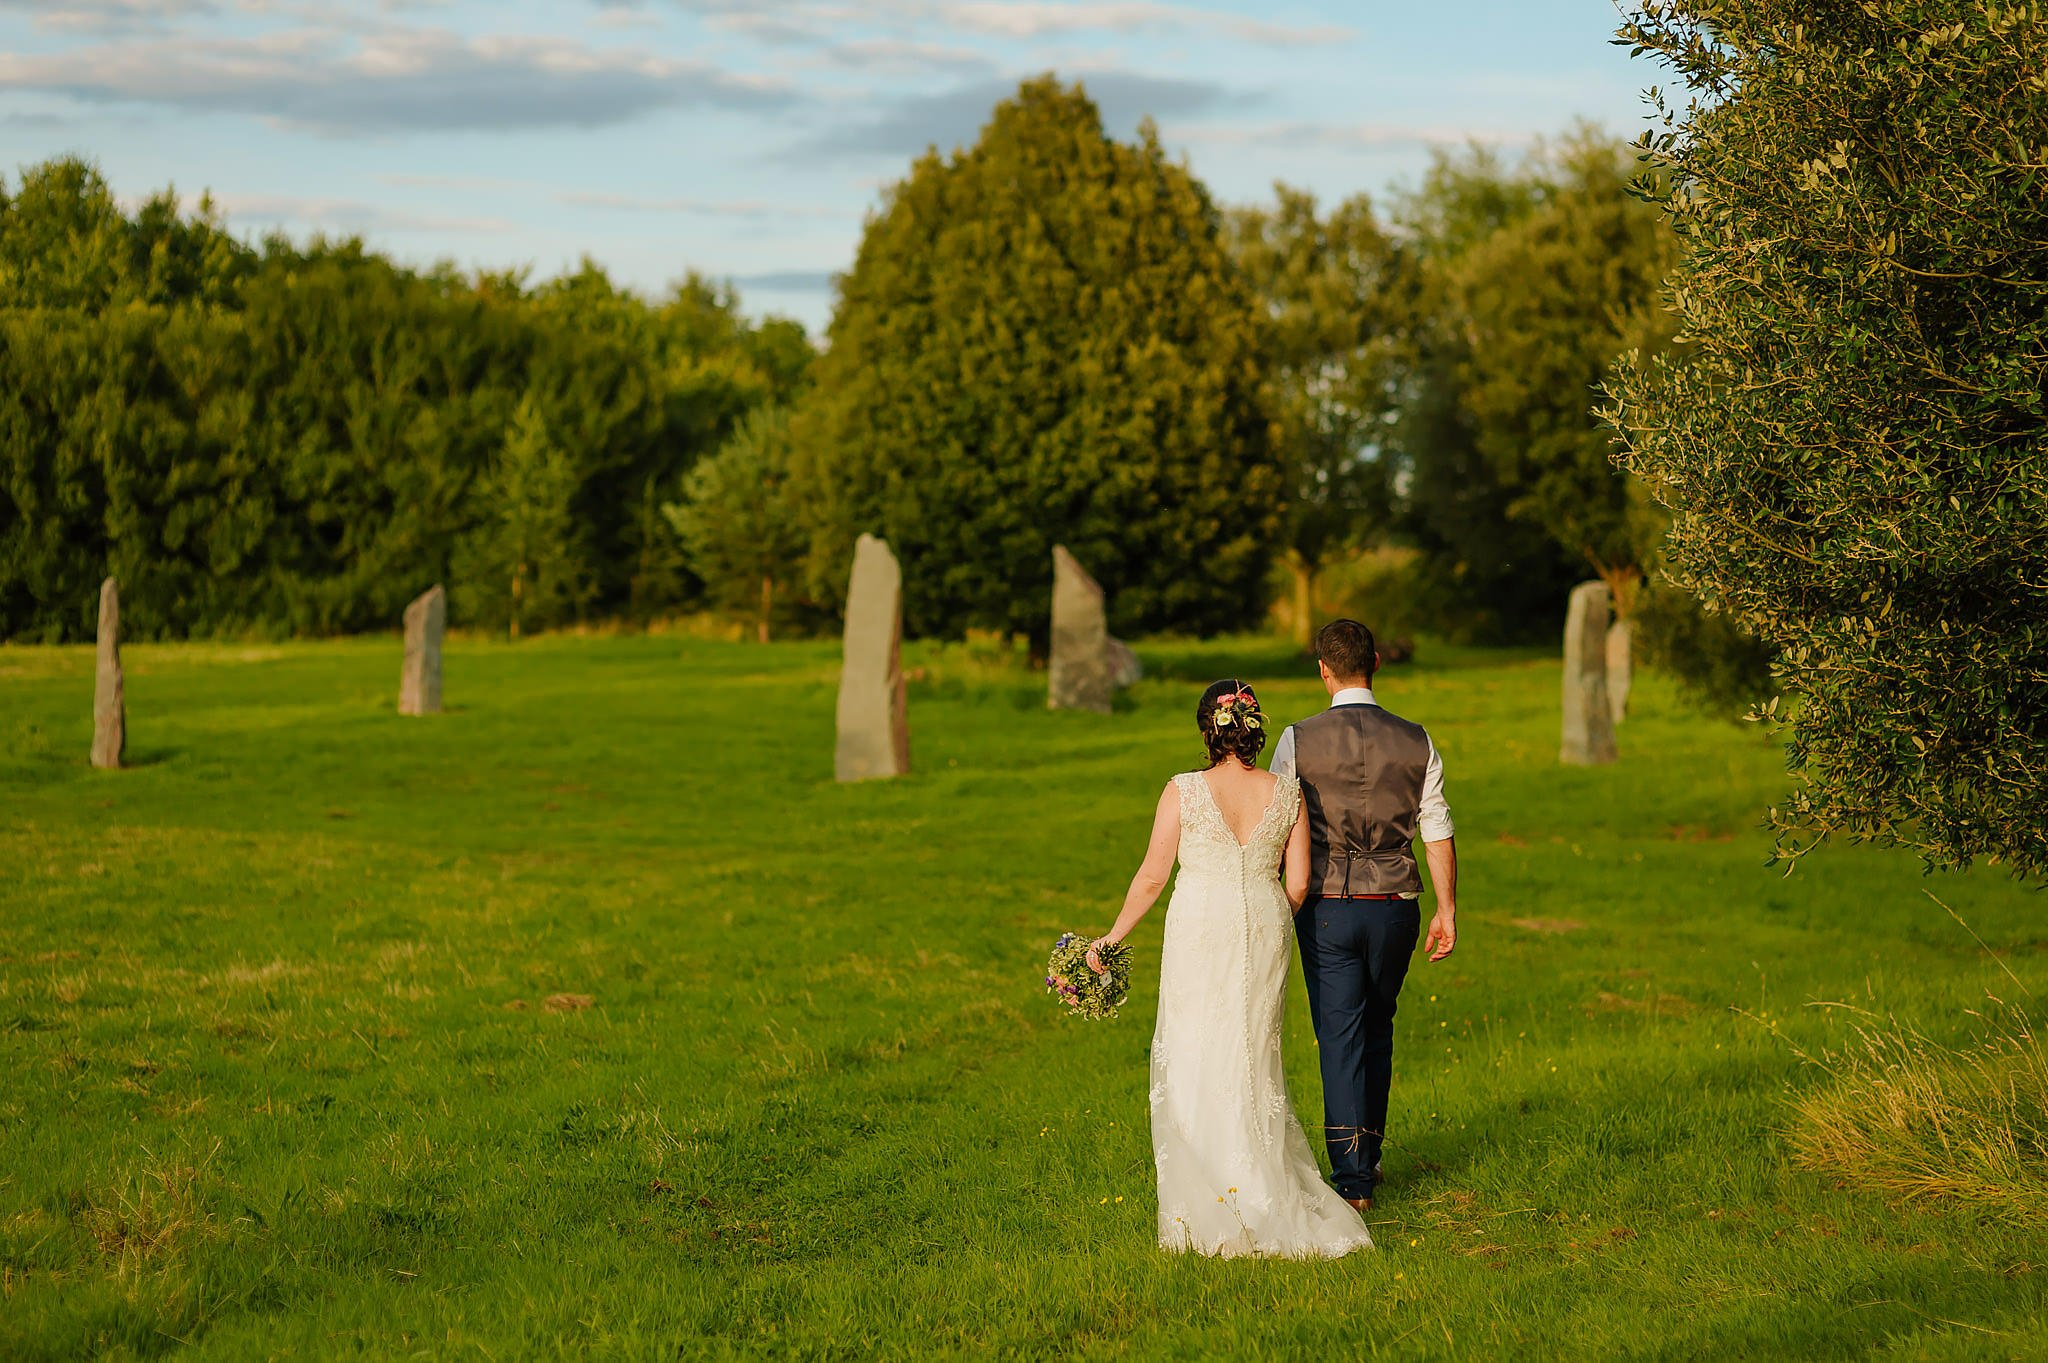 Wedding photography at Hellens Manor in Herefordshire, West Midlands | Shelley + Ian 127